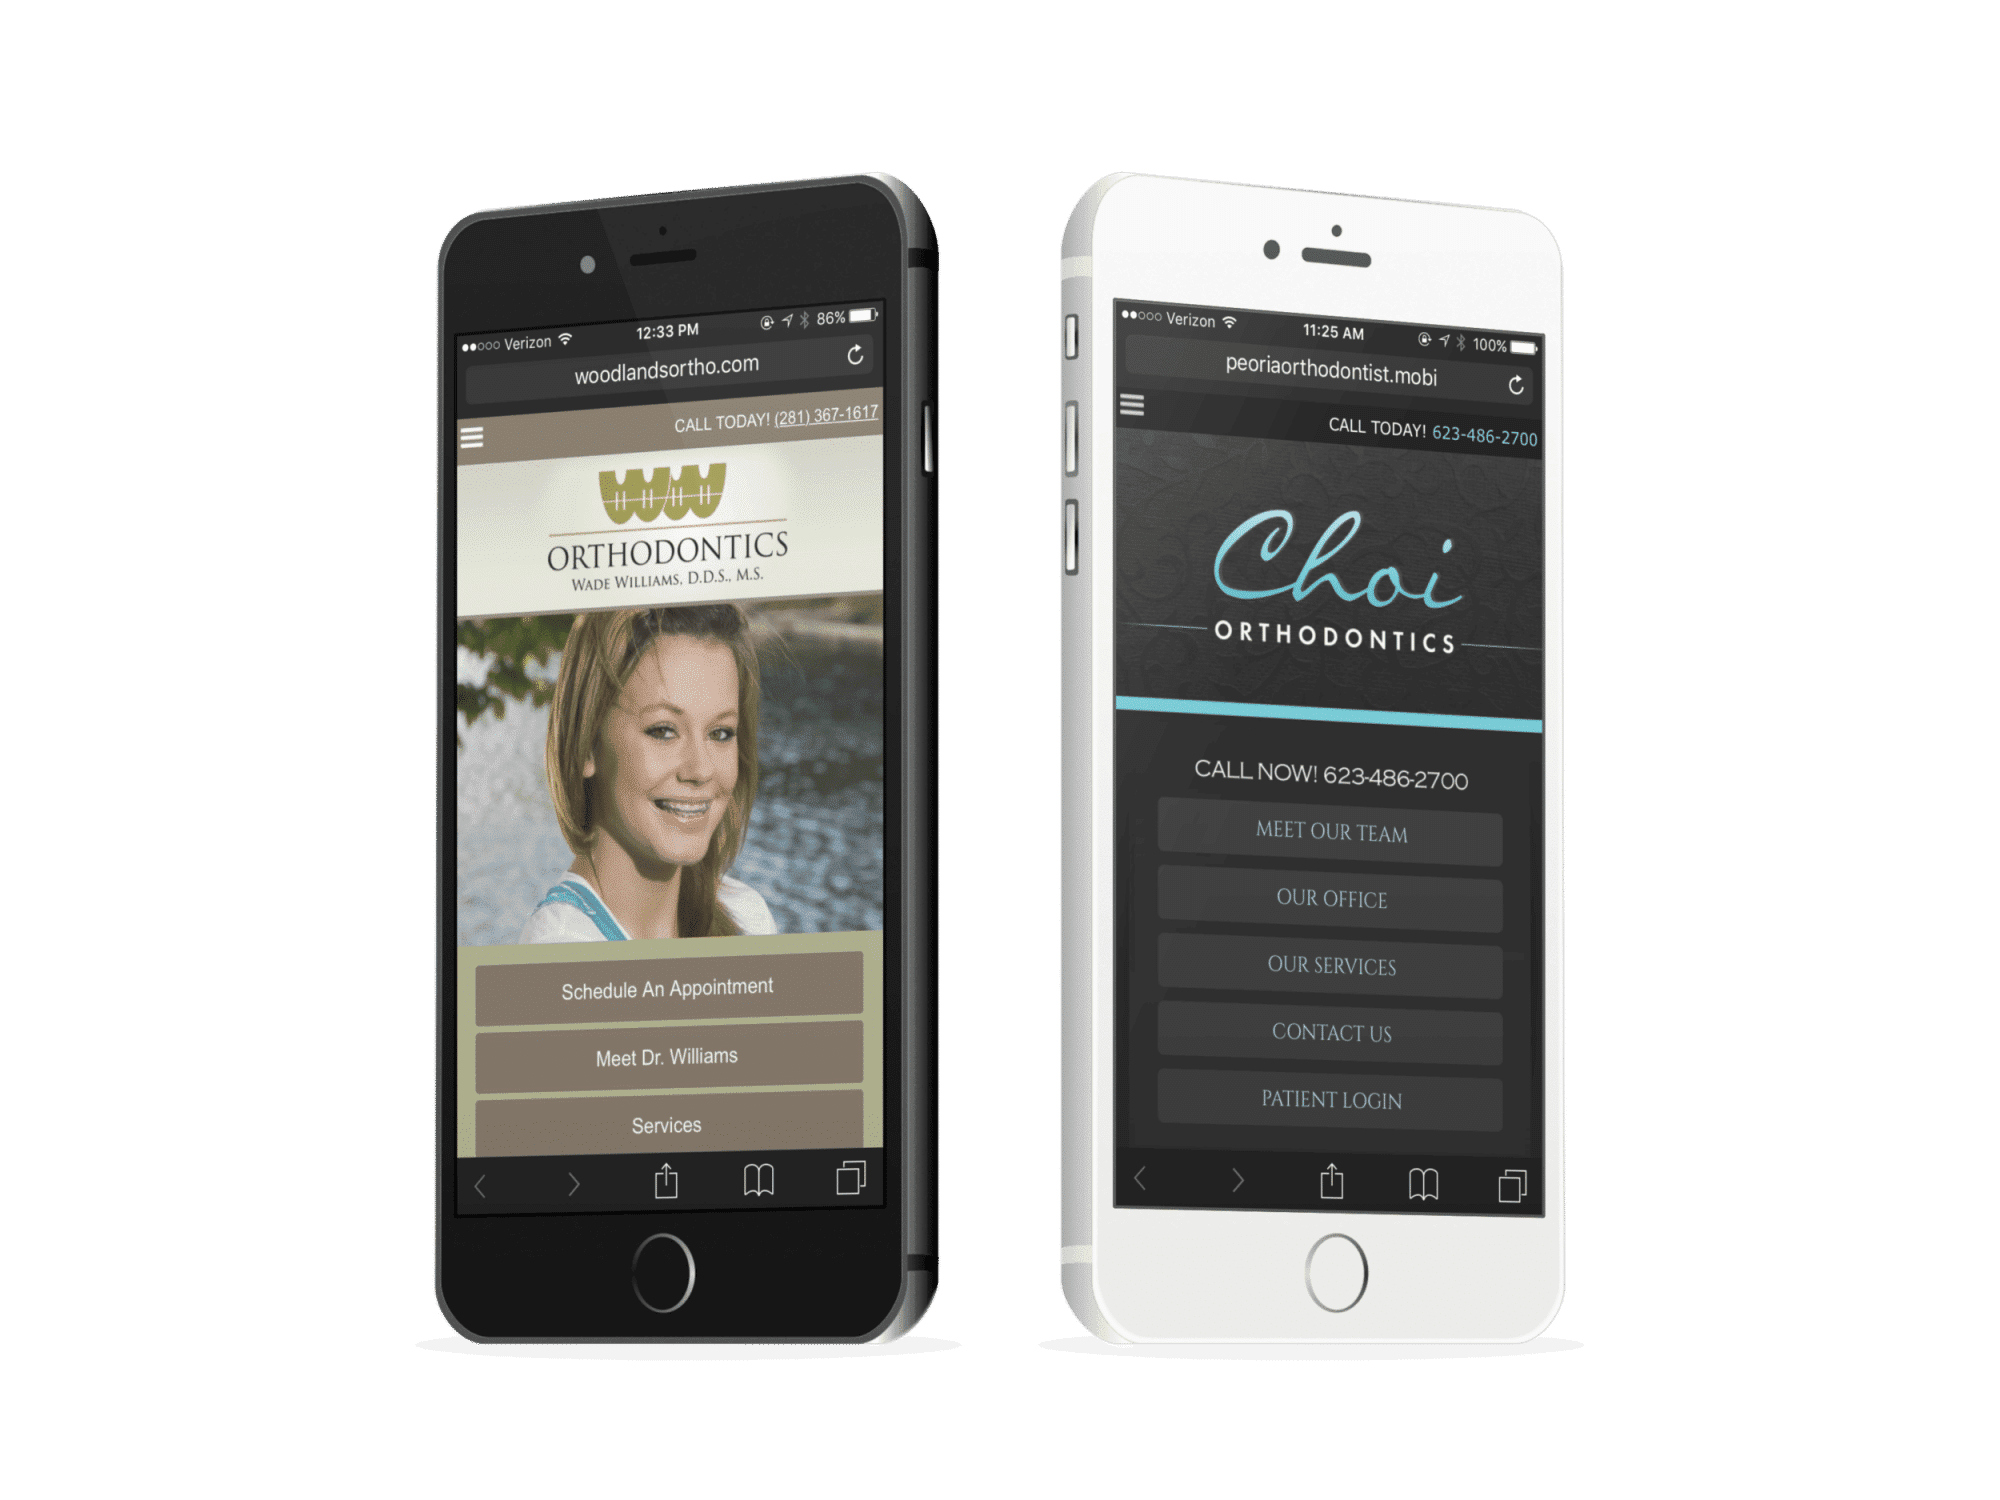 Two Mobile Websites Belong To Two Orthodontists